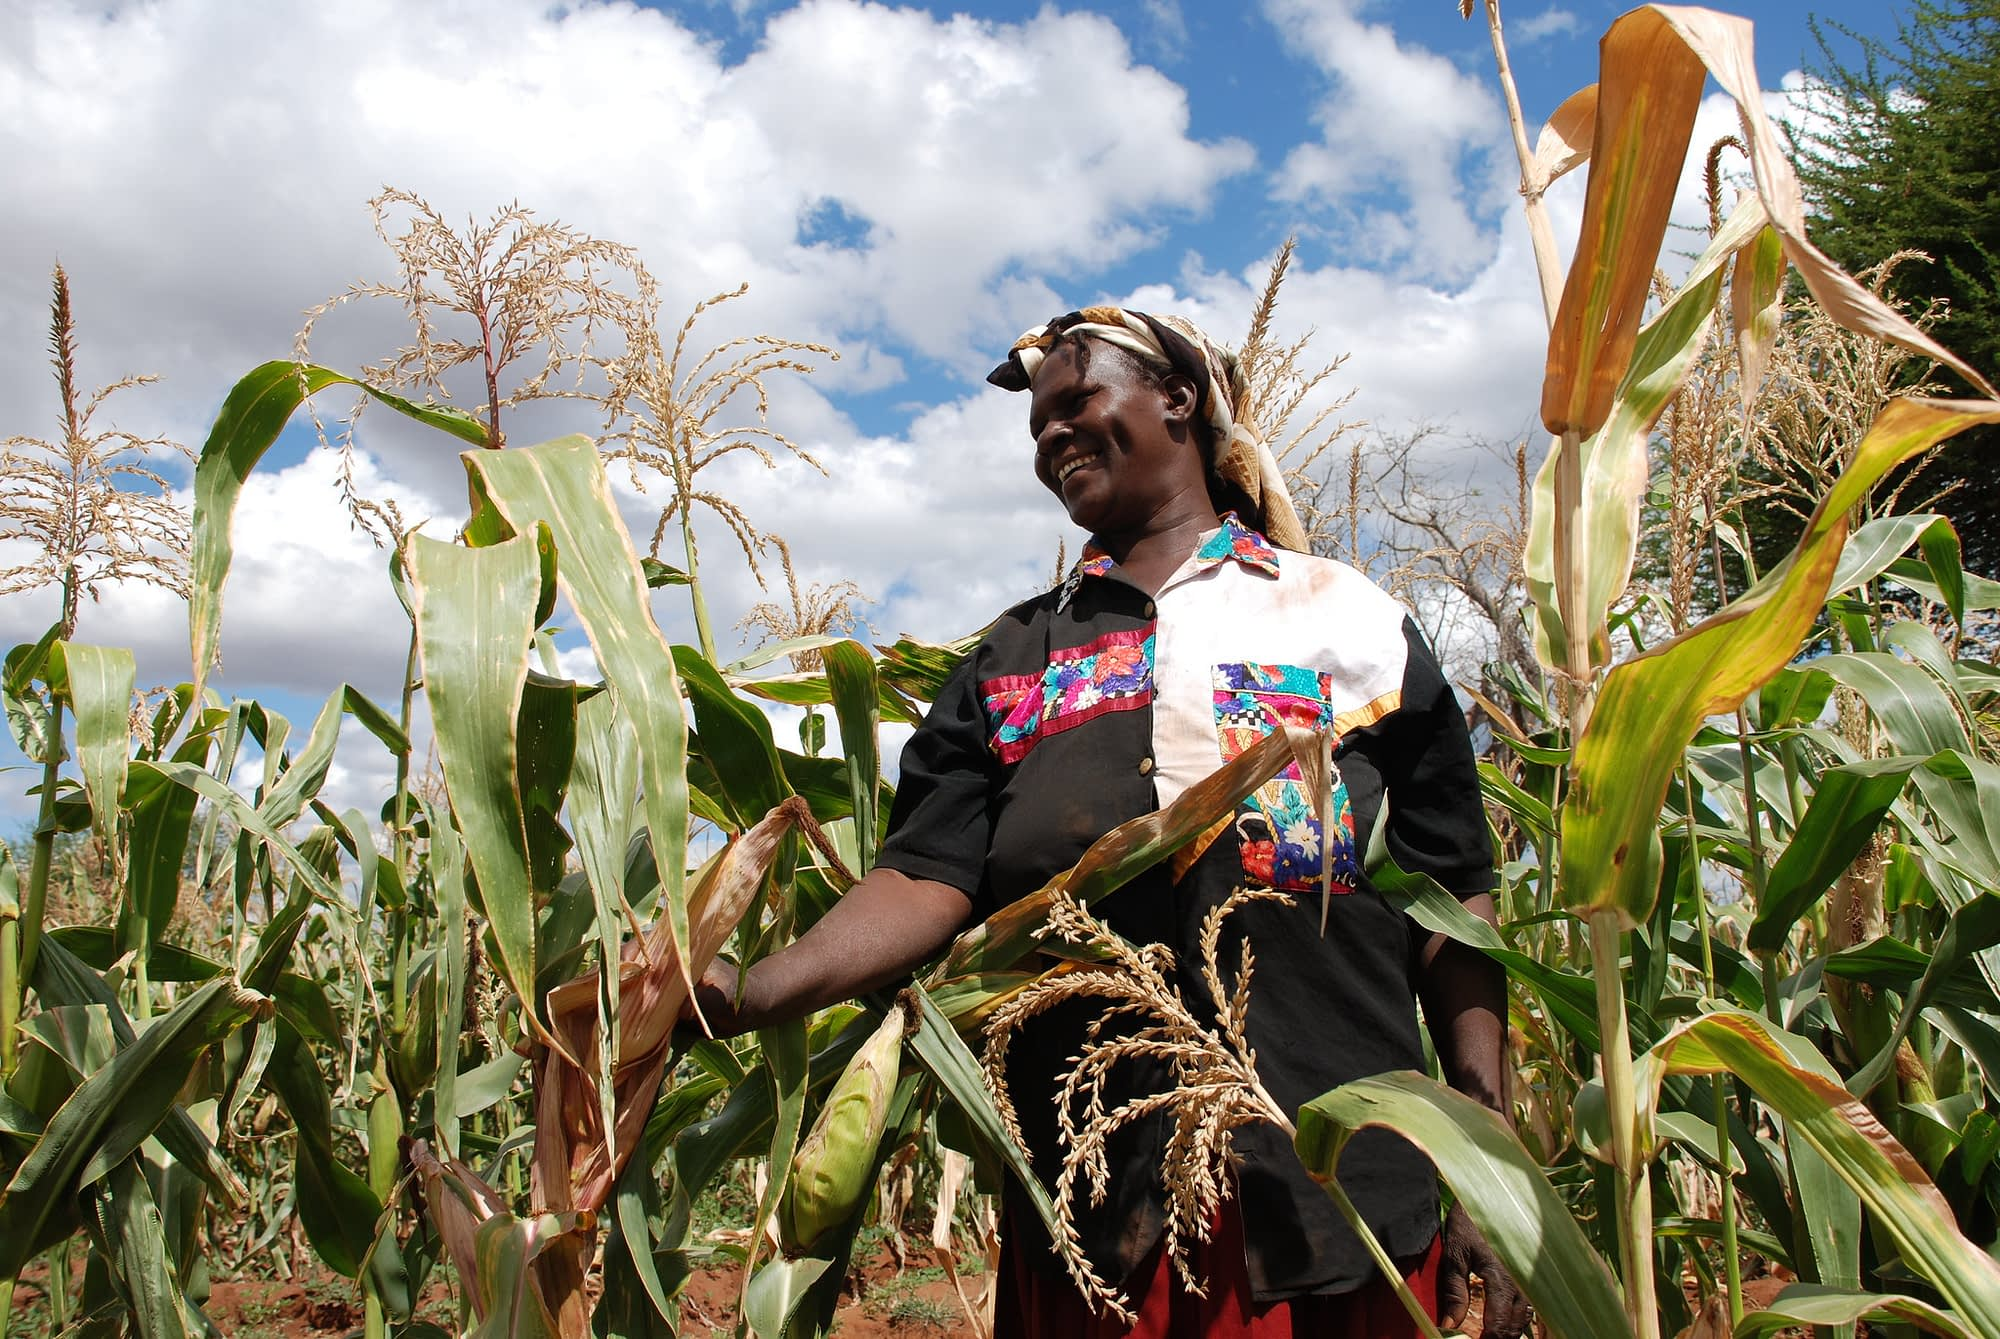 Drought tolerant maize route out of poverty for community-based seed producer, Kenya. (Photo: Anne Wangalachi/CIMMYT)